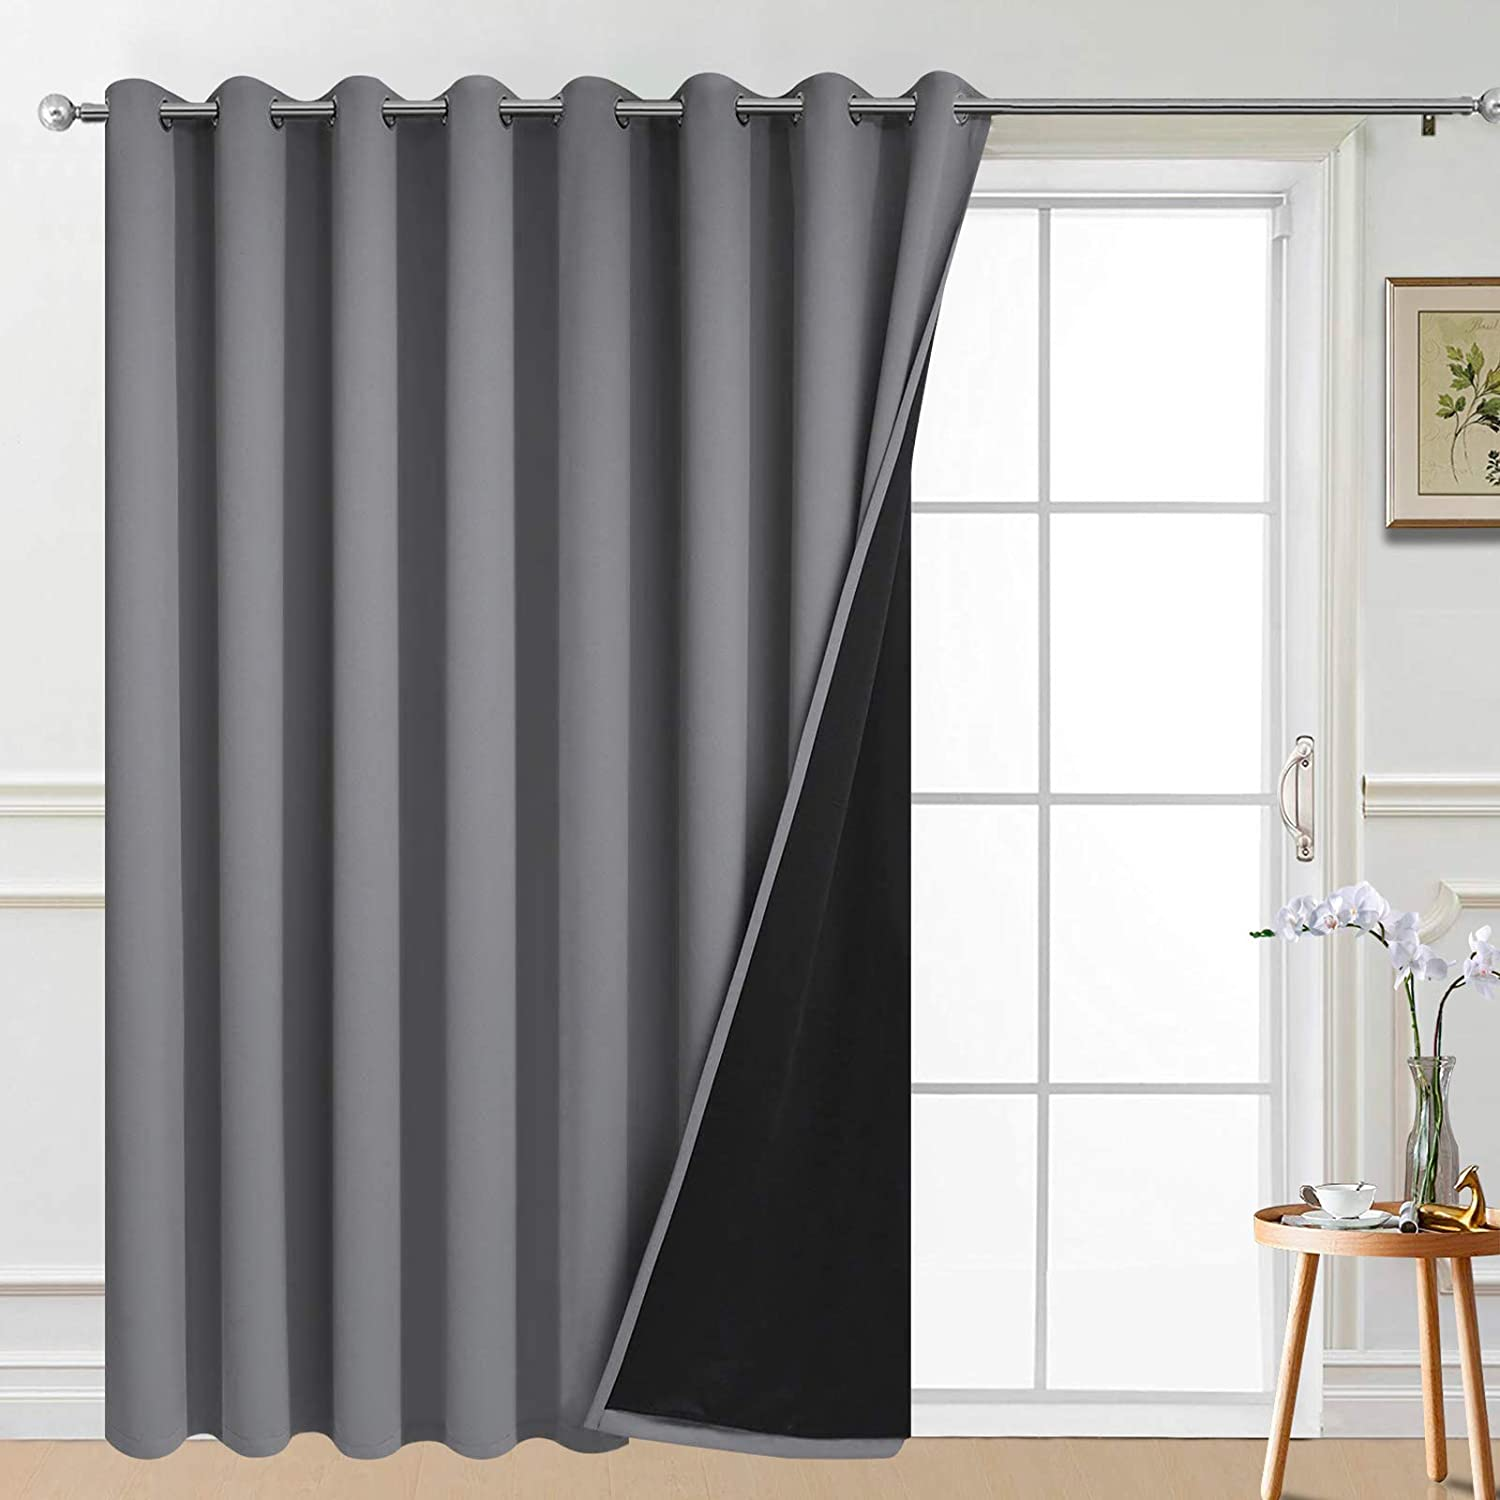 Amazon Com Yakamok 100 Wide Blackout Curtain 100 X 84 Inches For Sliding Glass Door Grommet Light Blocking Thermal Insulated Room Divider Curtain For Living Room 1 Panel 8 3ft Wide X 7ft Tall Grey